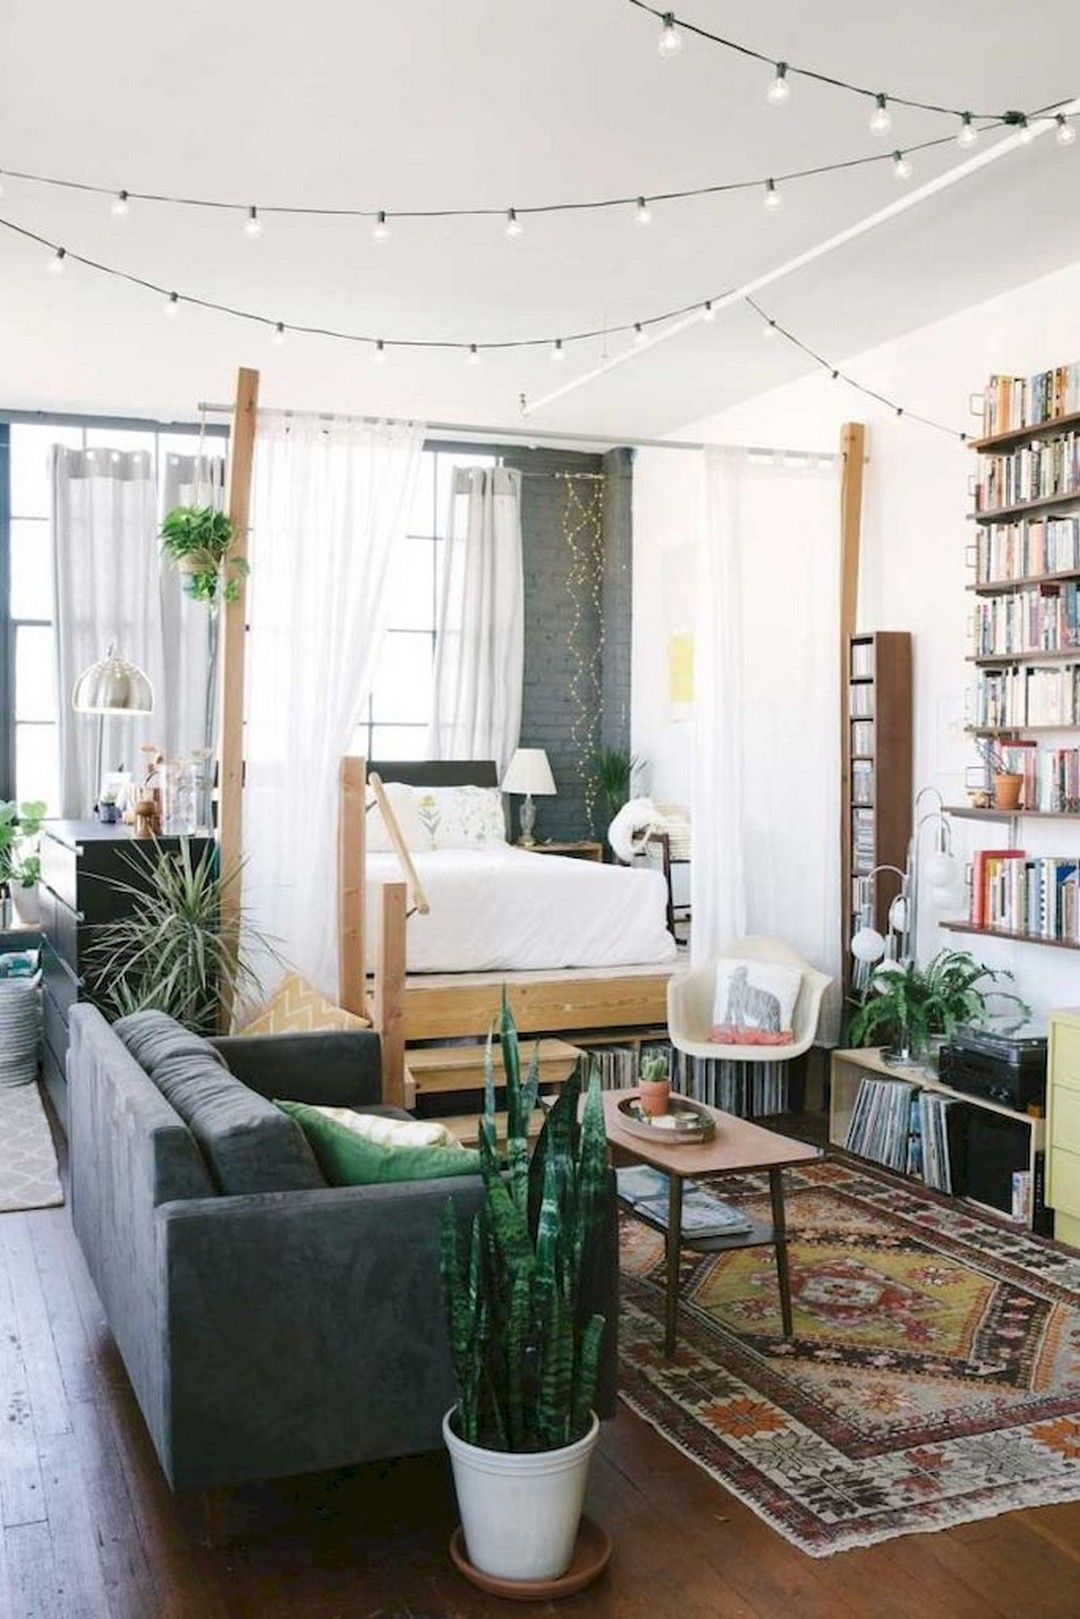 85 Cozy Small Apartment Decorating Ideas On A Budget S Decomagz